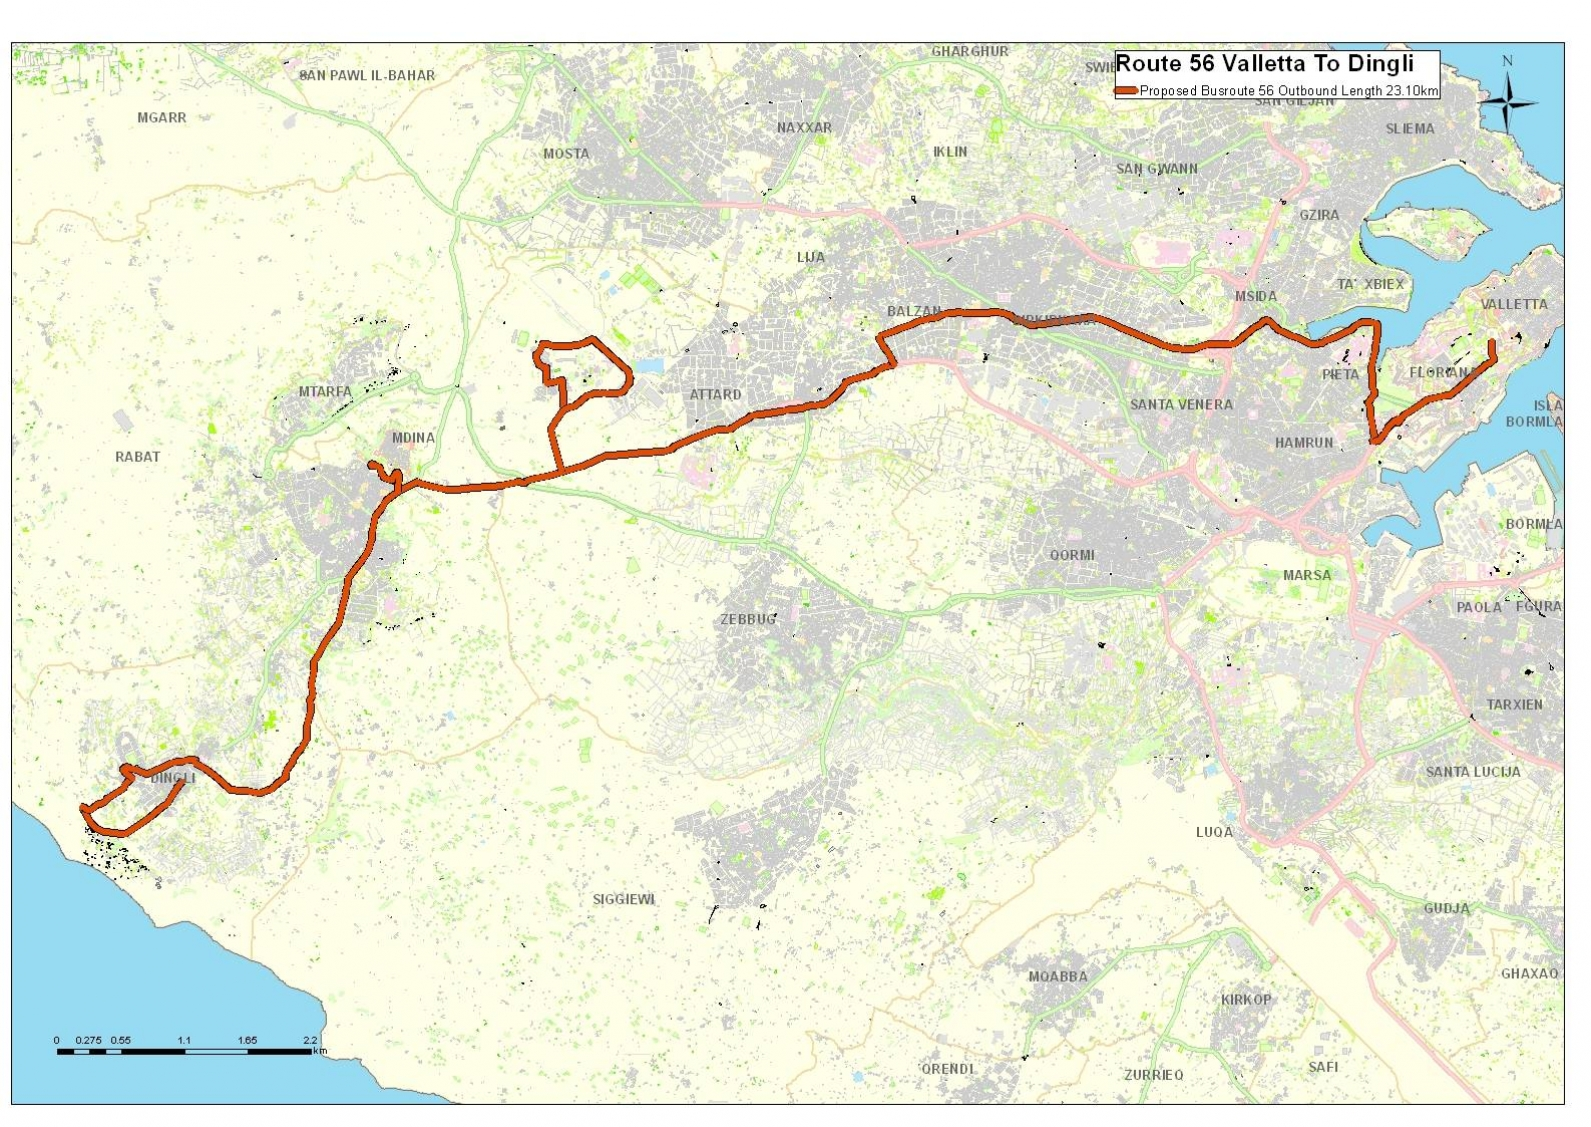 Land-current-network-routes-and-schedules-Dingli-Mtarfa-Rabat-11